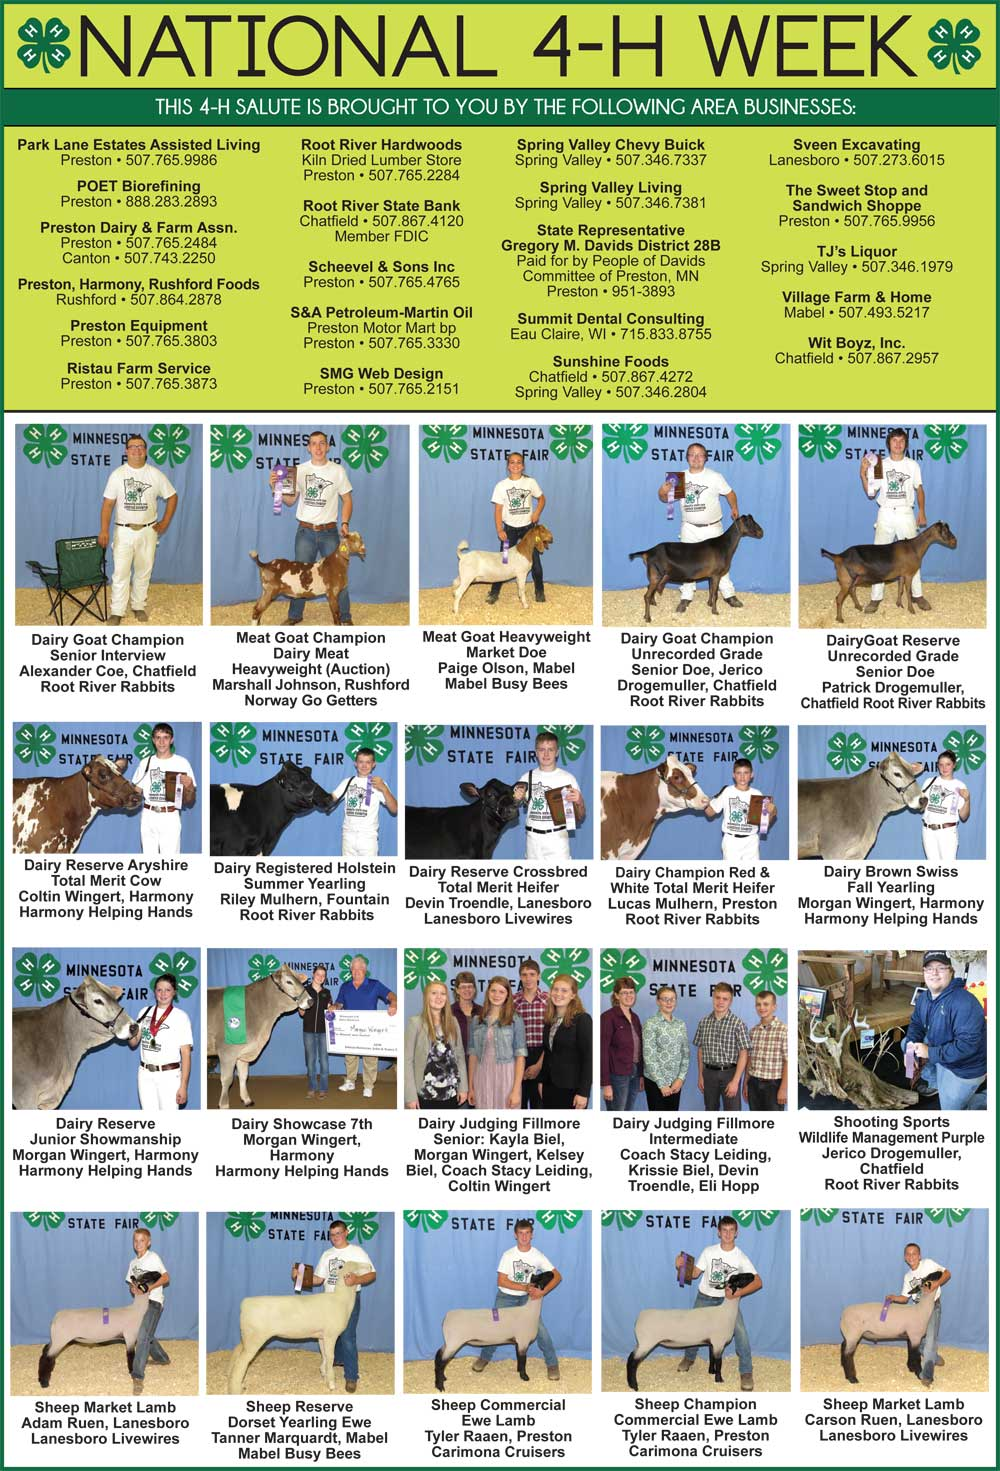 Fillmore County Journal - National 4-H Week 2017